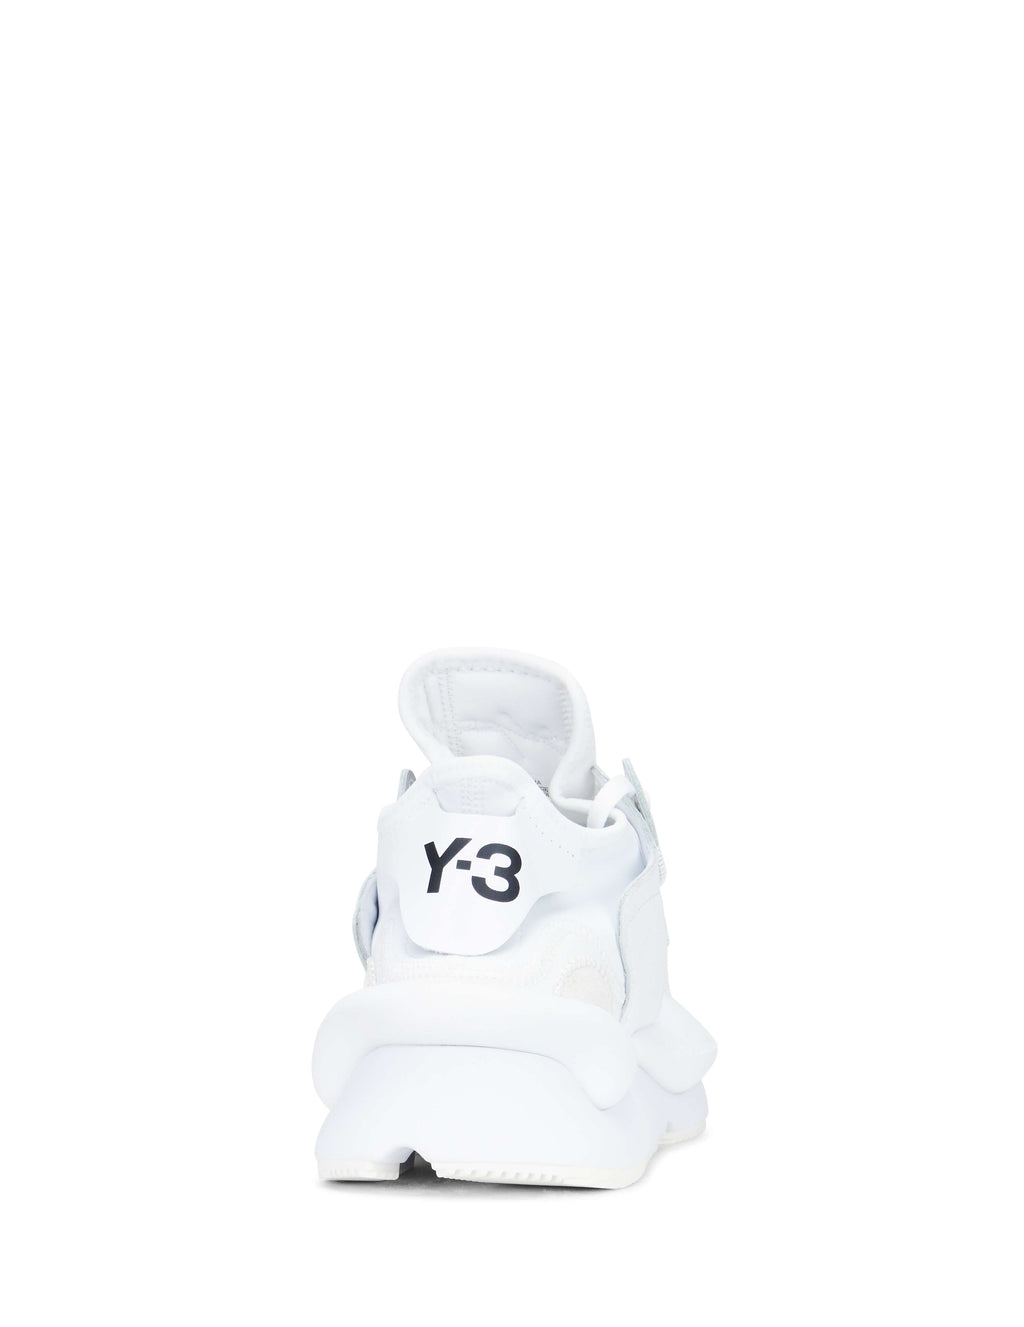 Y-3 Men's Giulio Fashion White/Black Kaiwa Sneakers G54502